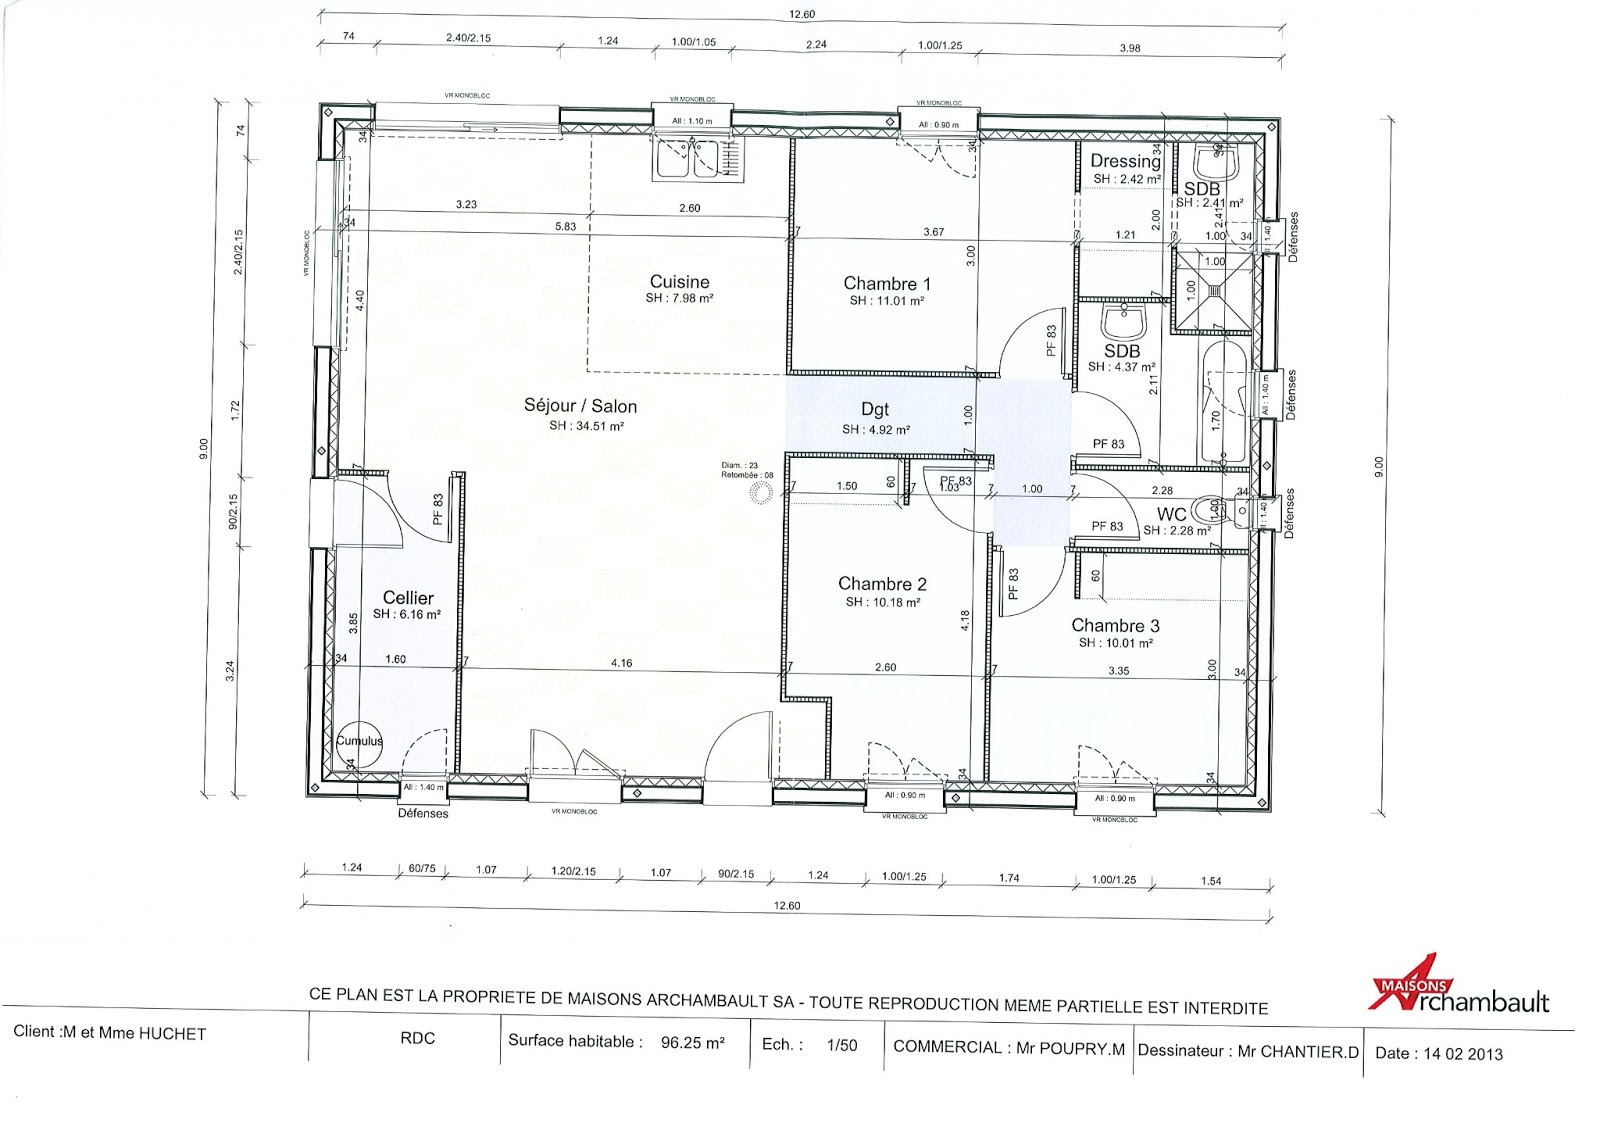 Plan interieur maison en l for Plan interieur maison en l